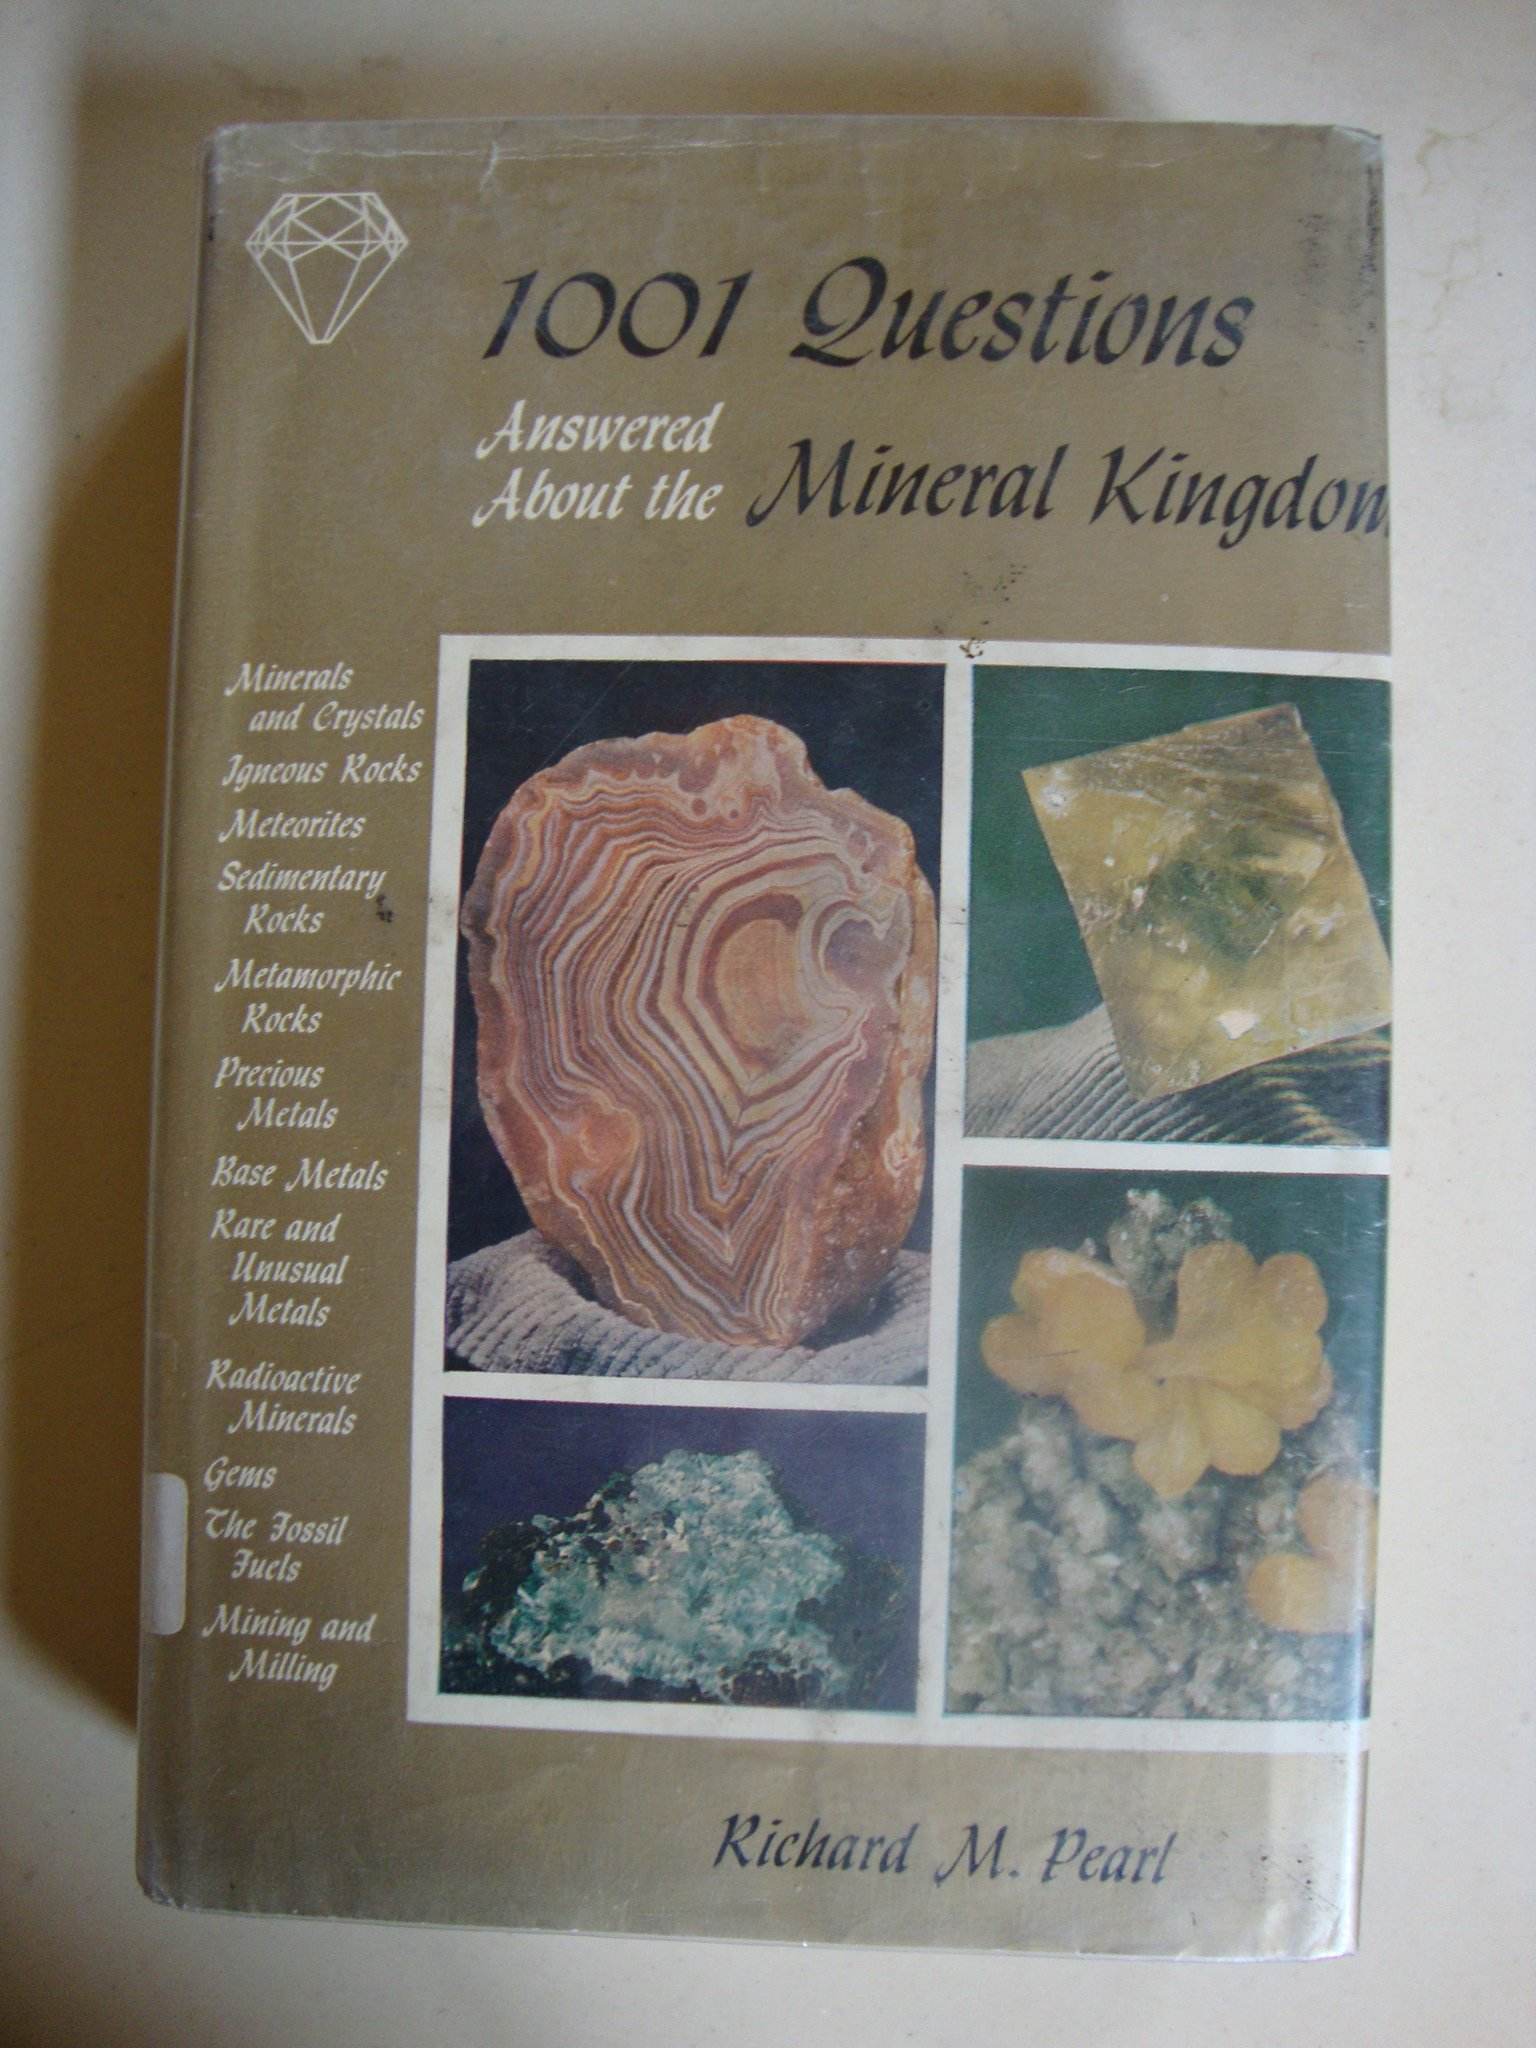 1001 Questions And Answers About The Mineral Kingdom: Pearl, Photographs  And Illustration: Amazon.com: Books